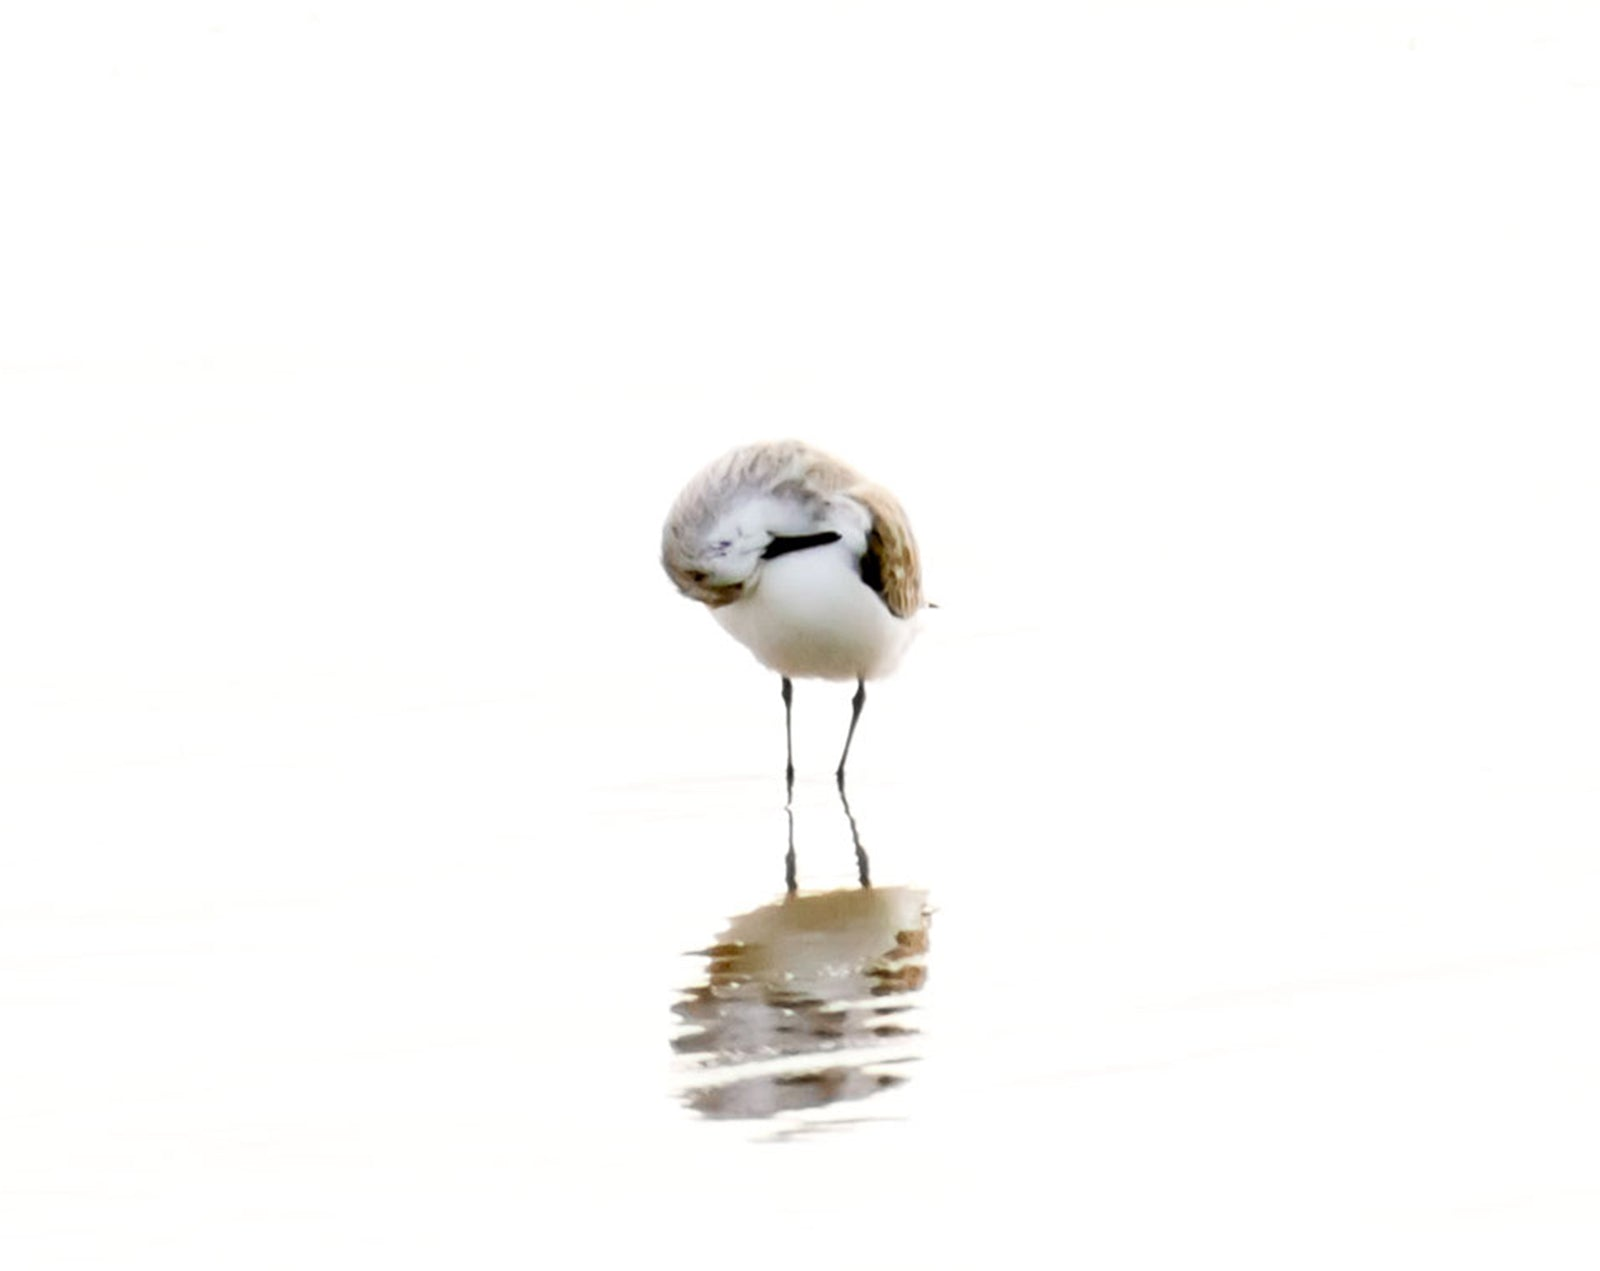 Sandpiper No 1 Bird Photography Wall Art by Cattie Coyle Photography